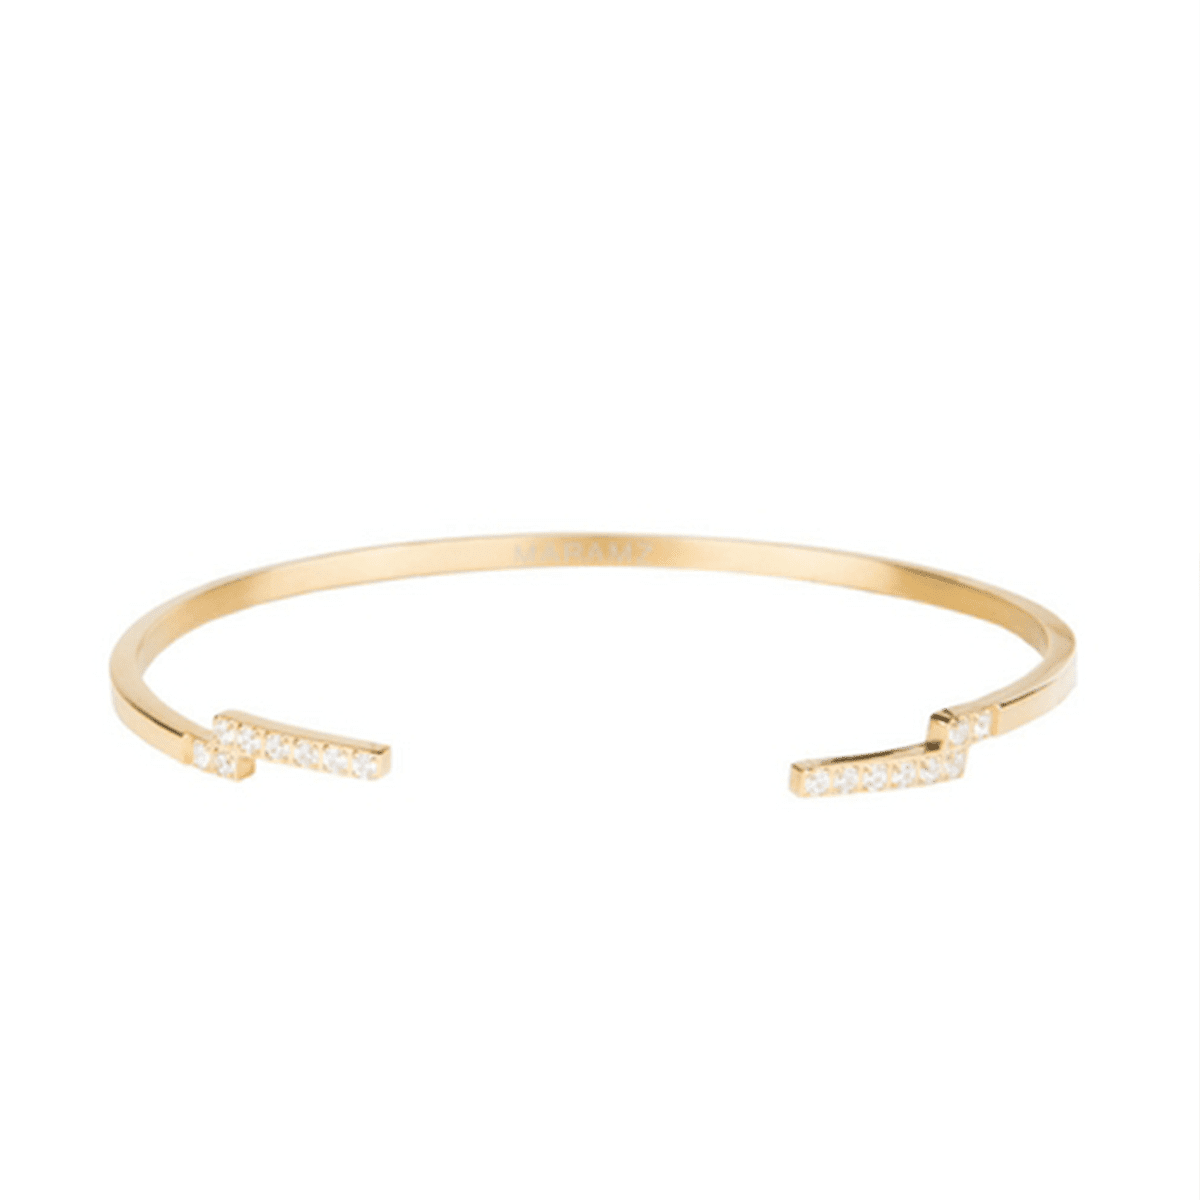 Lucent 18k Gold-Plated Cuff Bracelet